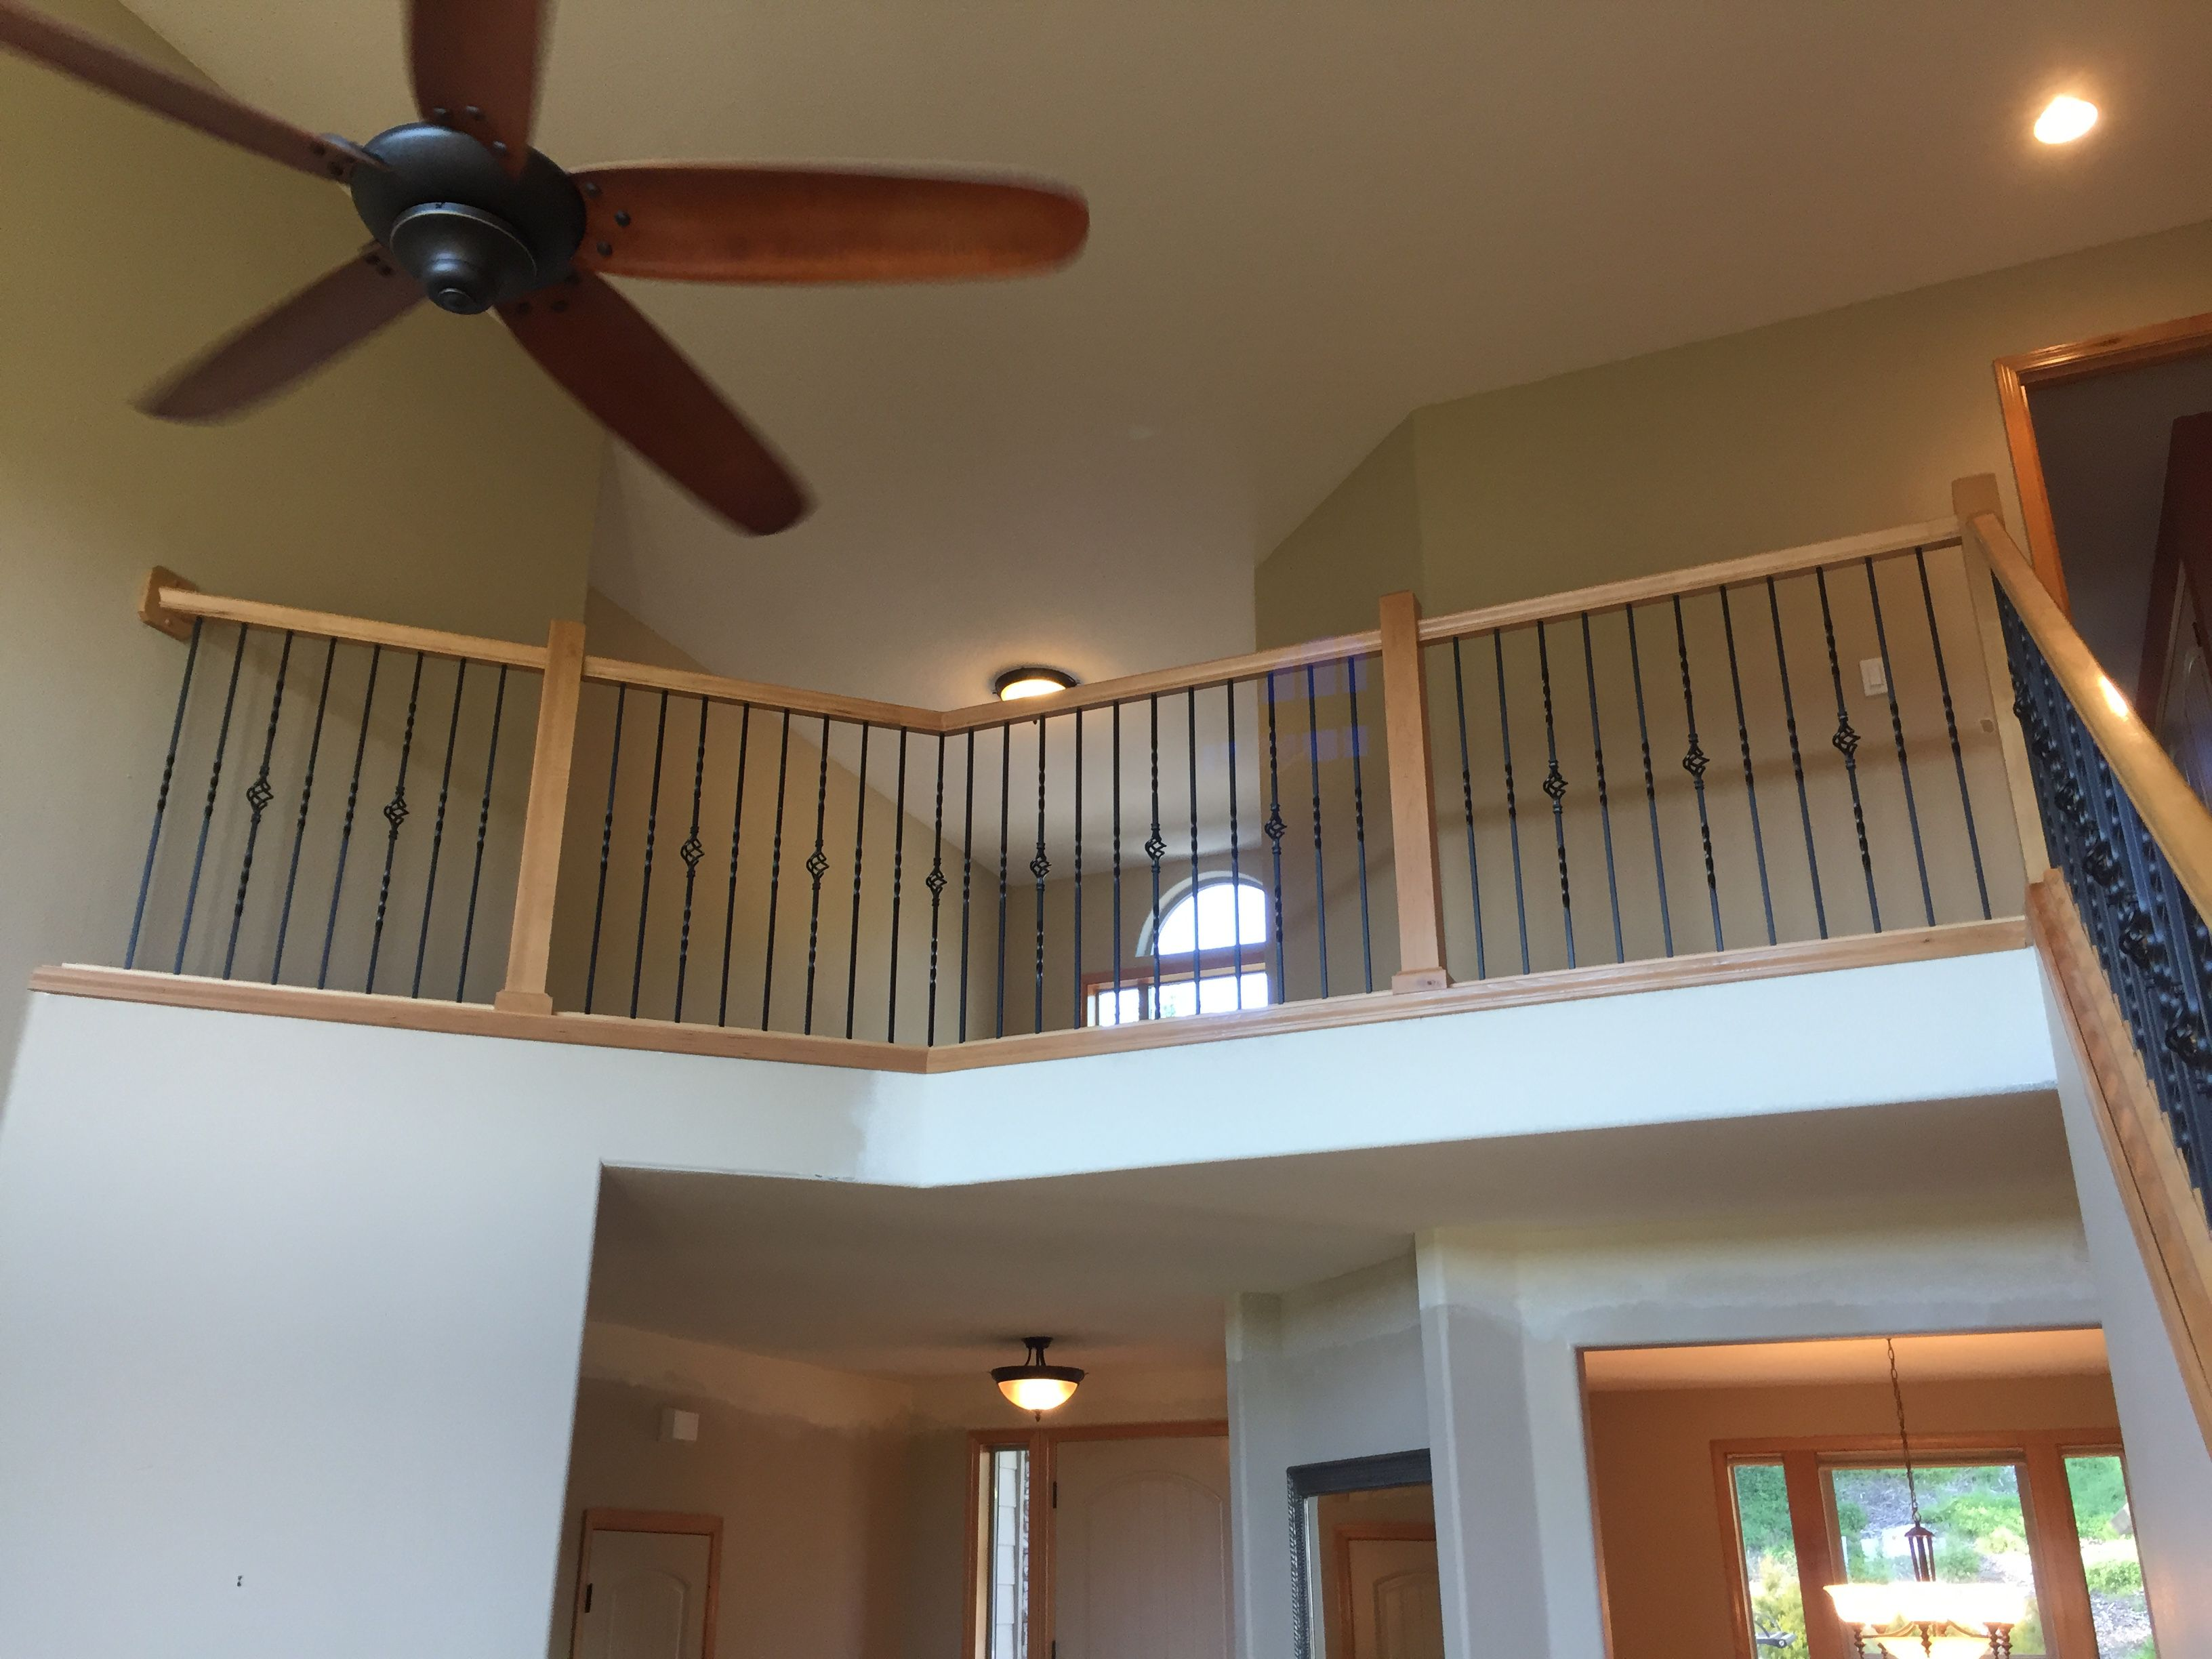 A stair remodel